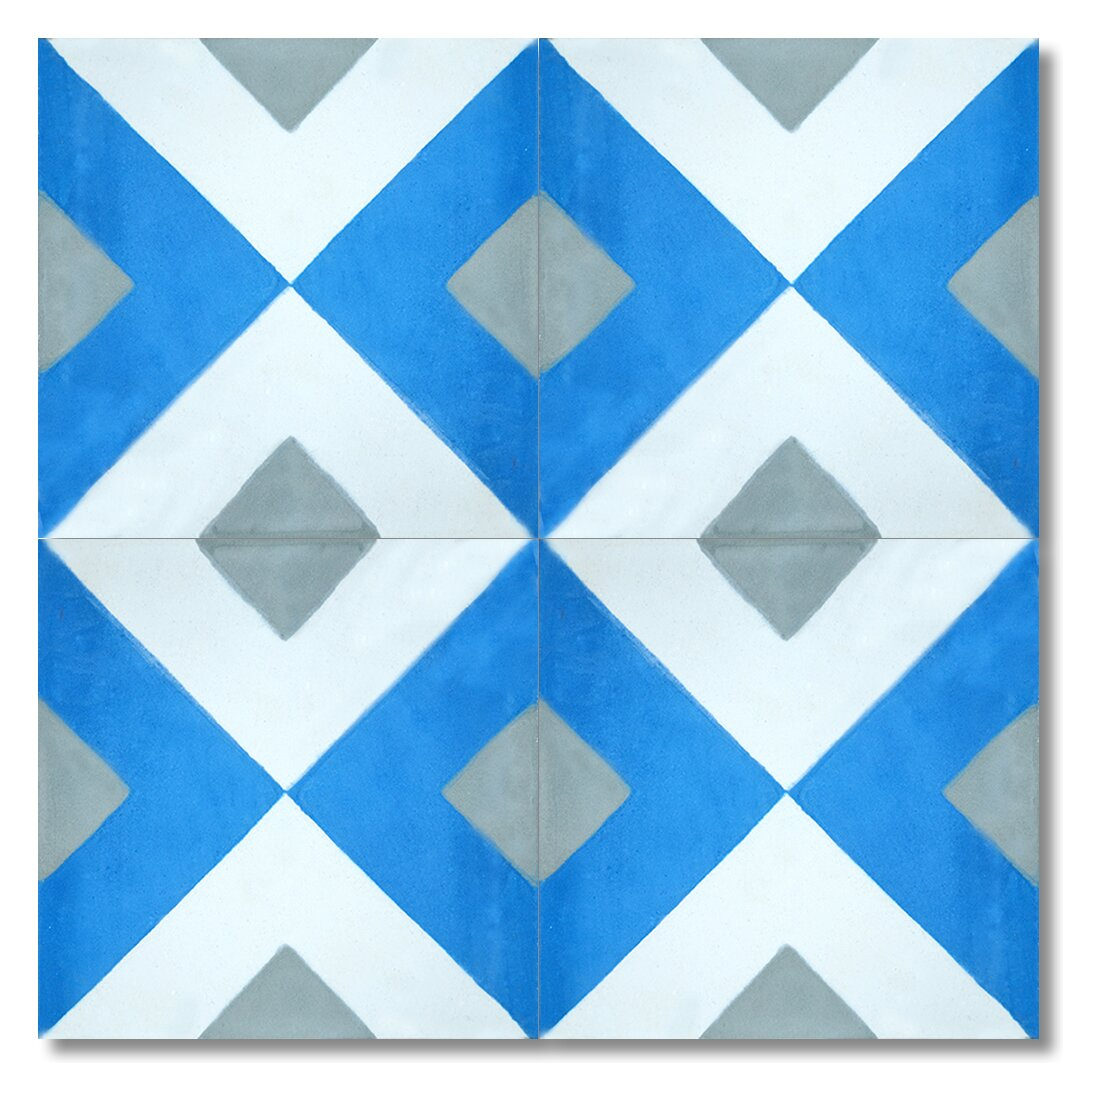 Moroccan mosaic tile house jadida 8 x 8 handmade cement for Blue and white cement tile